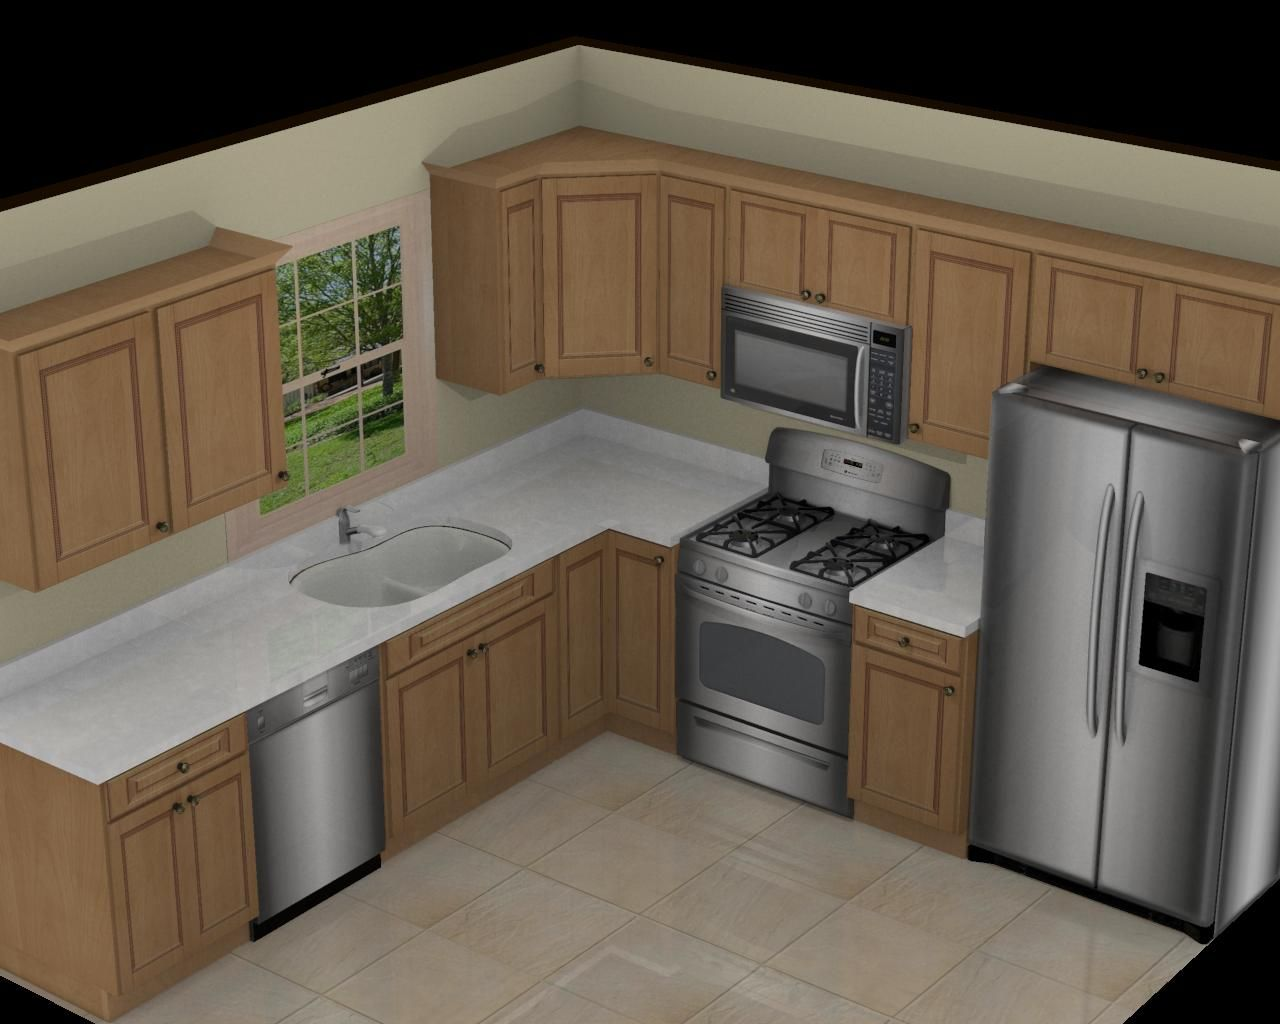 design a kitchen layout commercial island 10x10 on pinterest l shaped